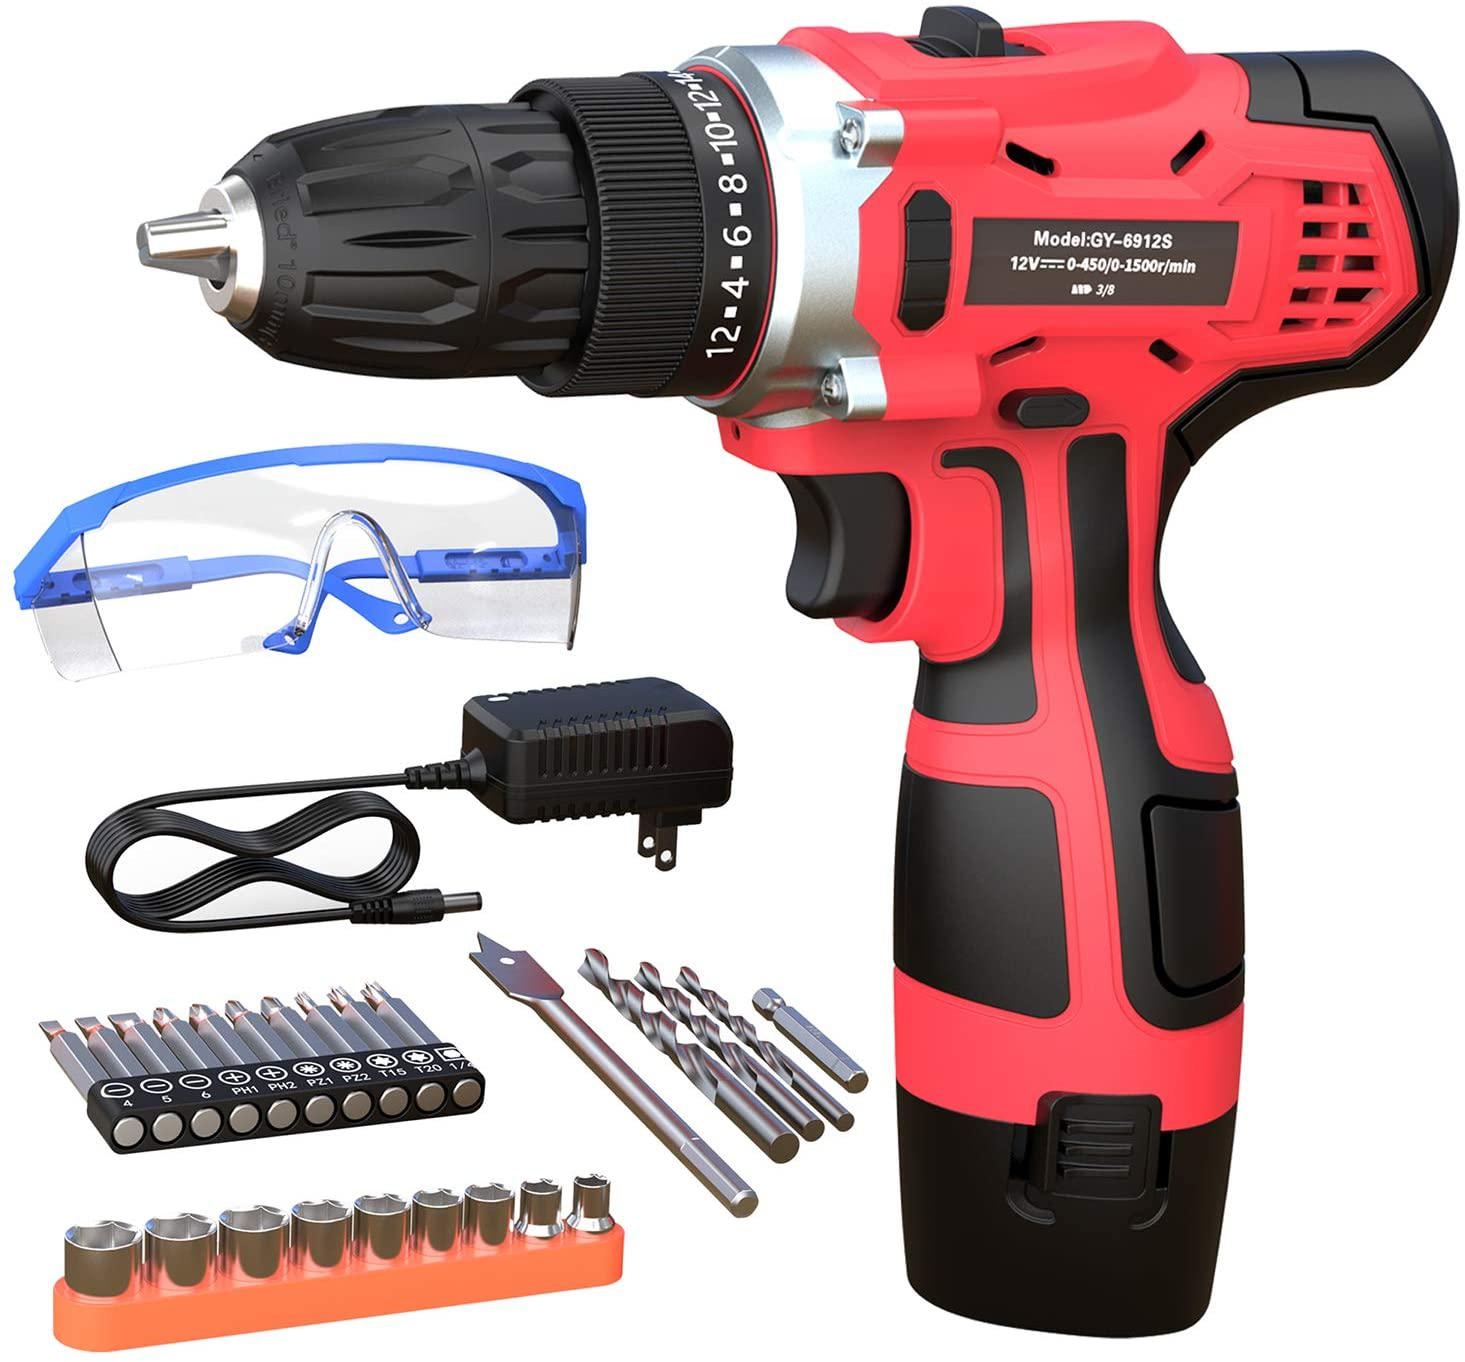 Best Cordless Drills With Tool Set (Special Sale Prices!)